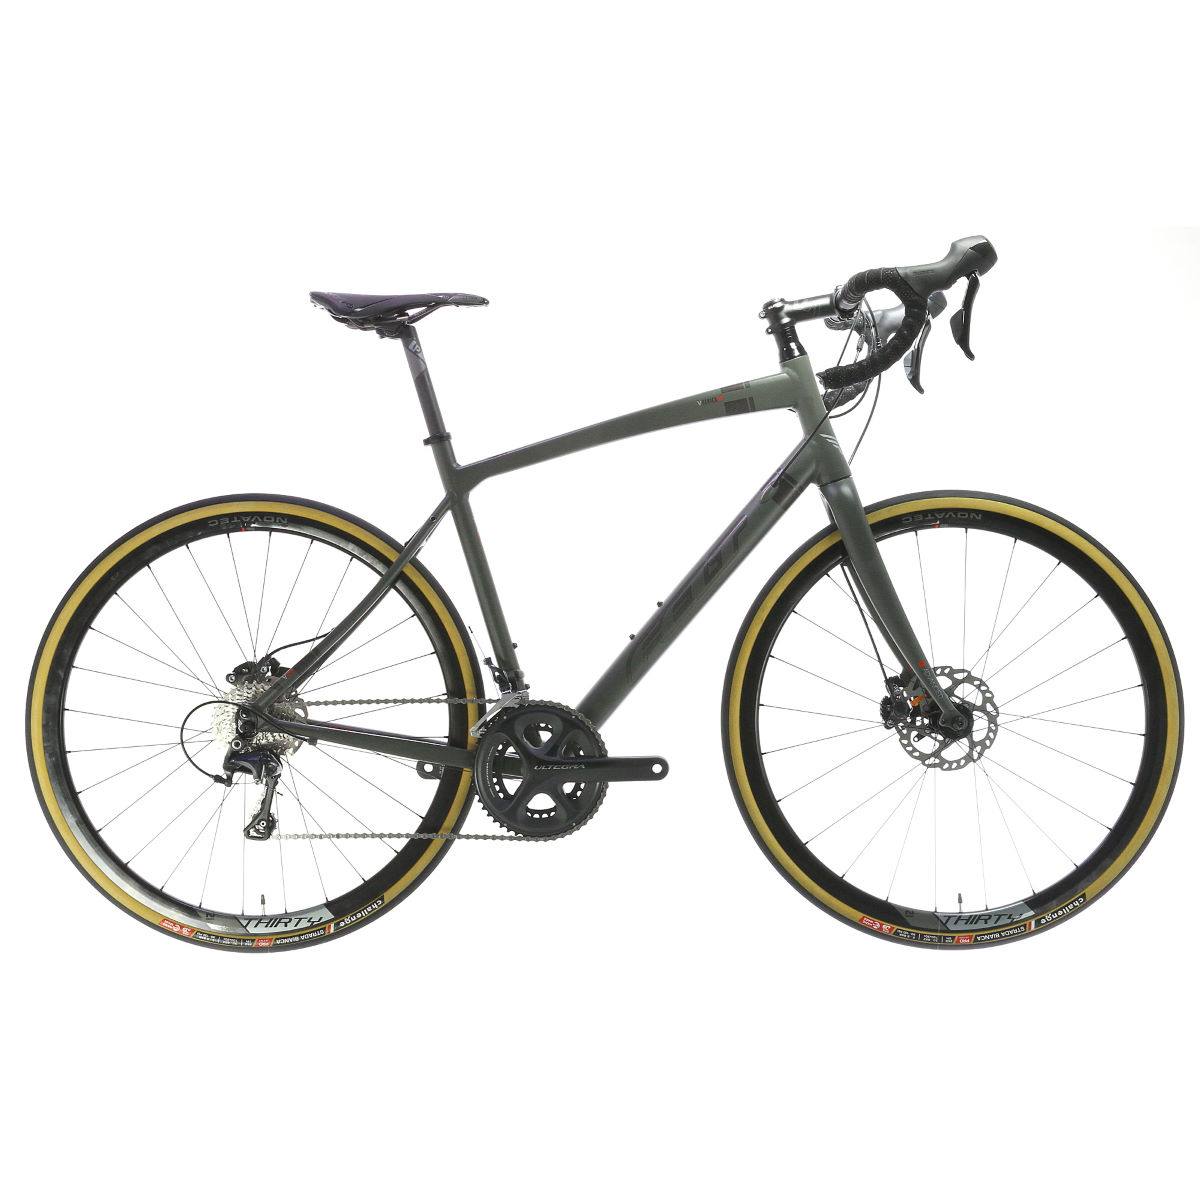 Vélo de route Felt V55 (2016) - 43cm Grey/Black/Red Vélos de route